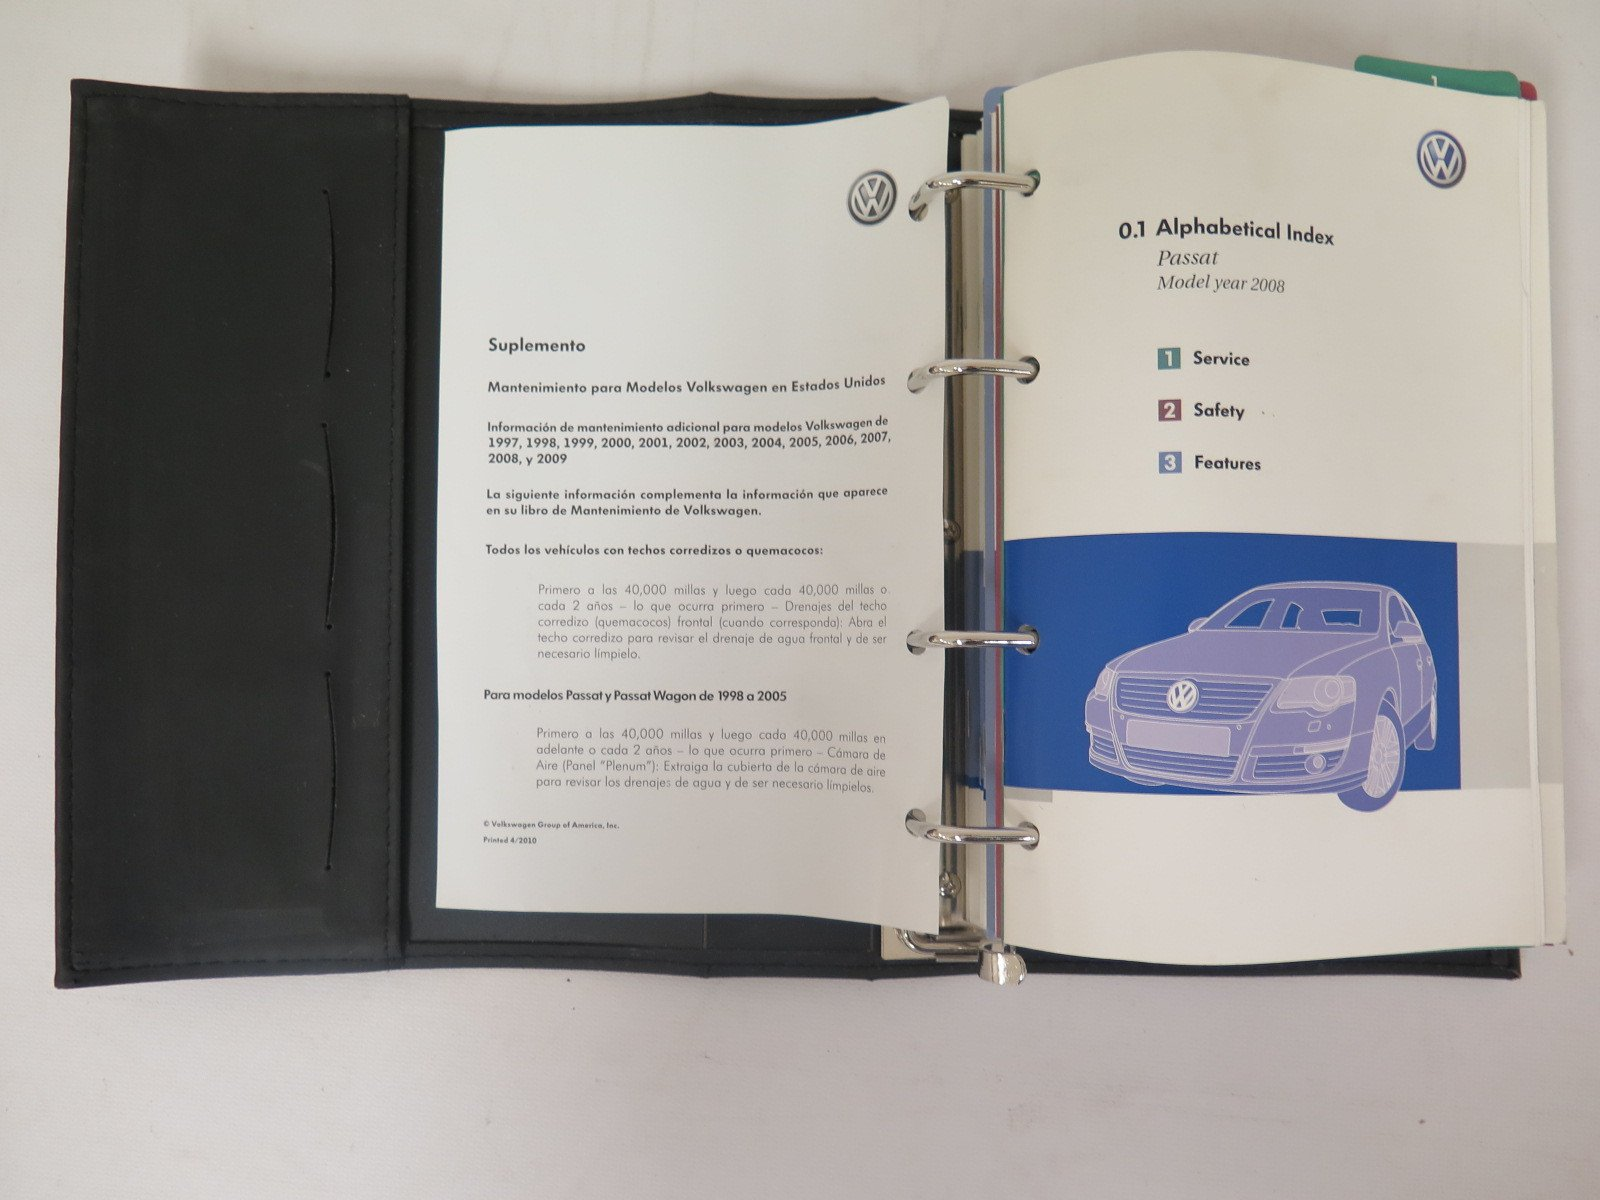 2008 VW Volkswagen Passat Owners Manual: VW Automotive: Amazon.com: Books